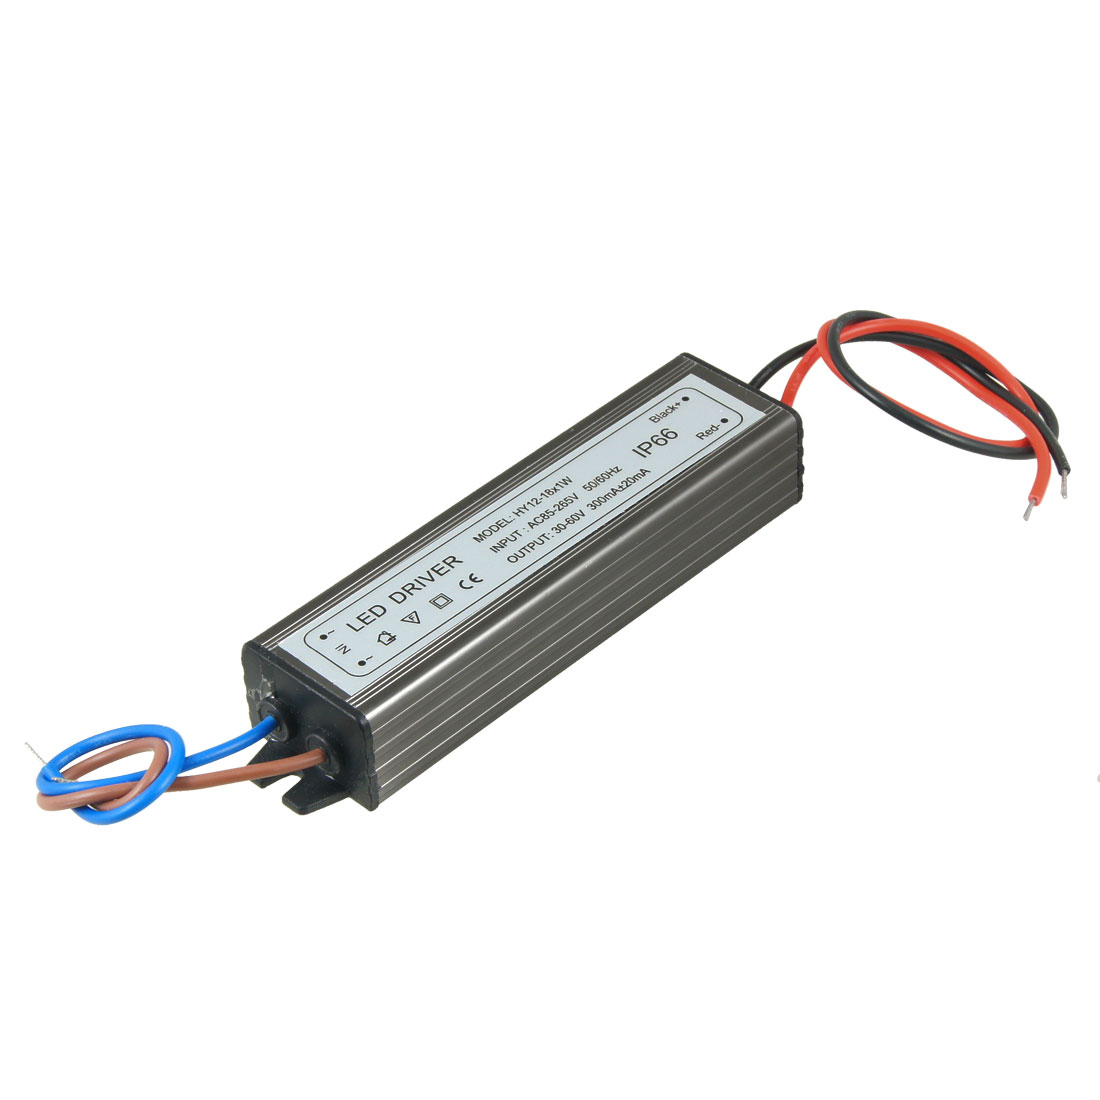 Waterprooof Power Supply Driver for (12-18)x1W LED 30-60V 300mA AC 85V-265V